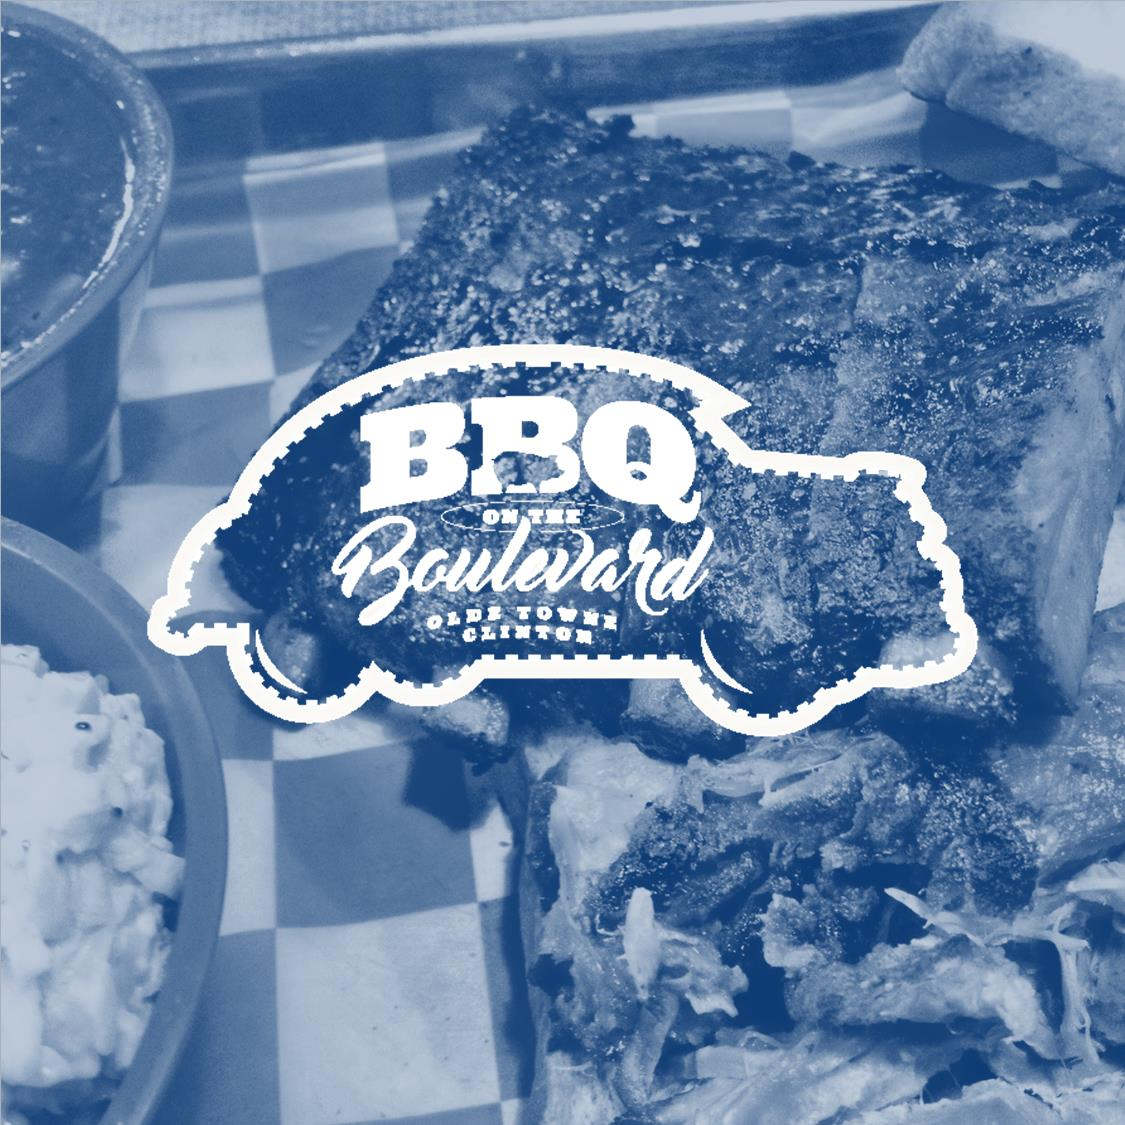 Image result for bbq on the boulevard clinton ms